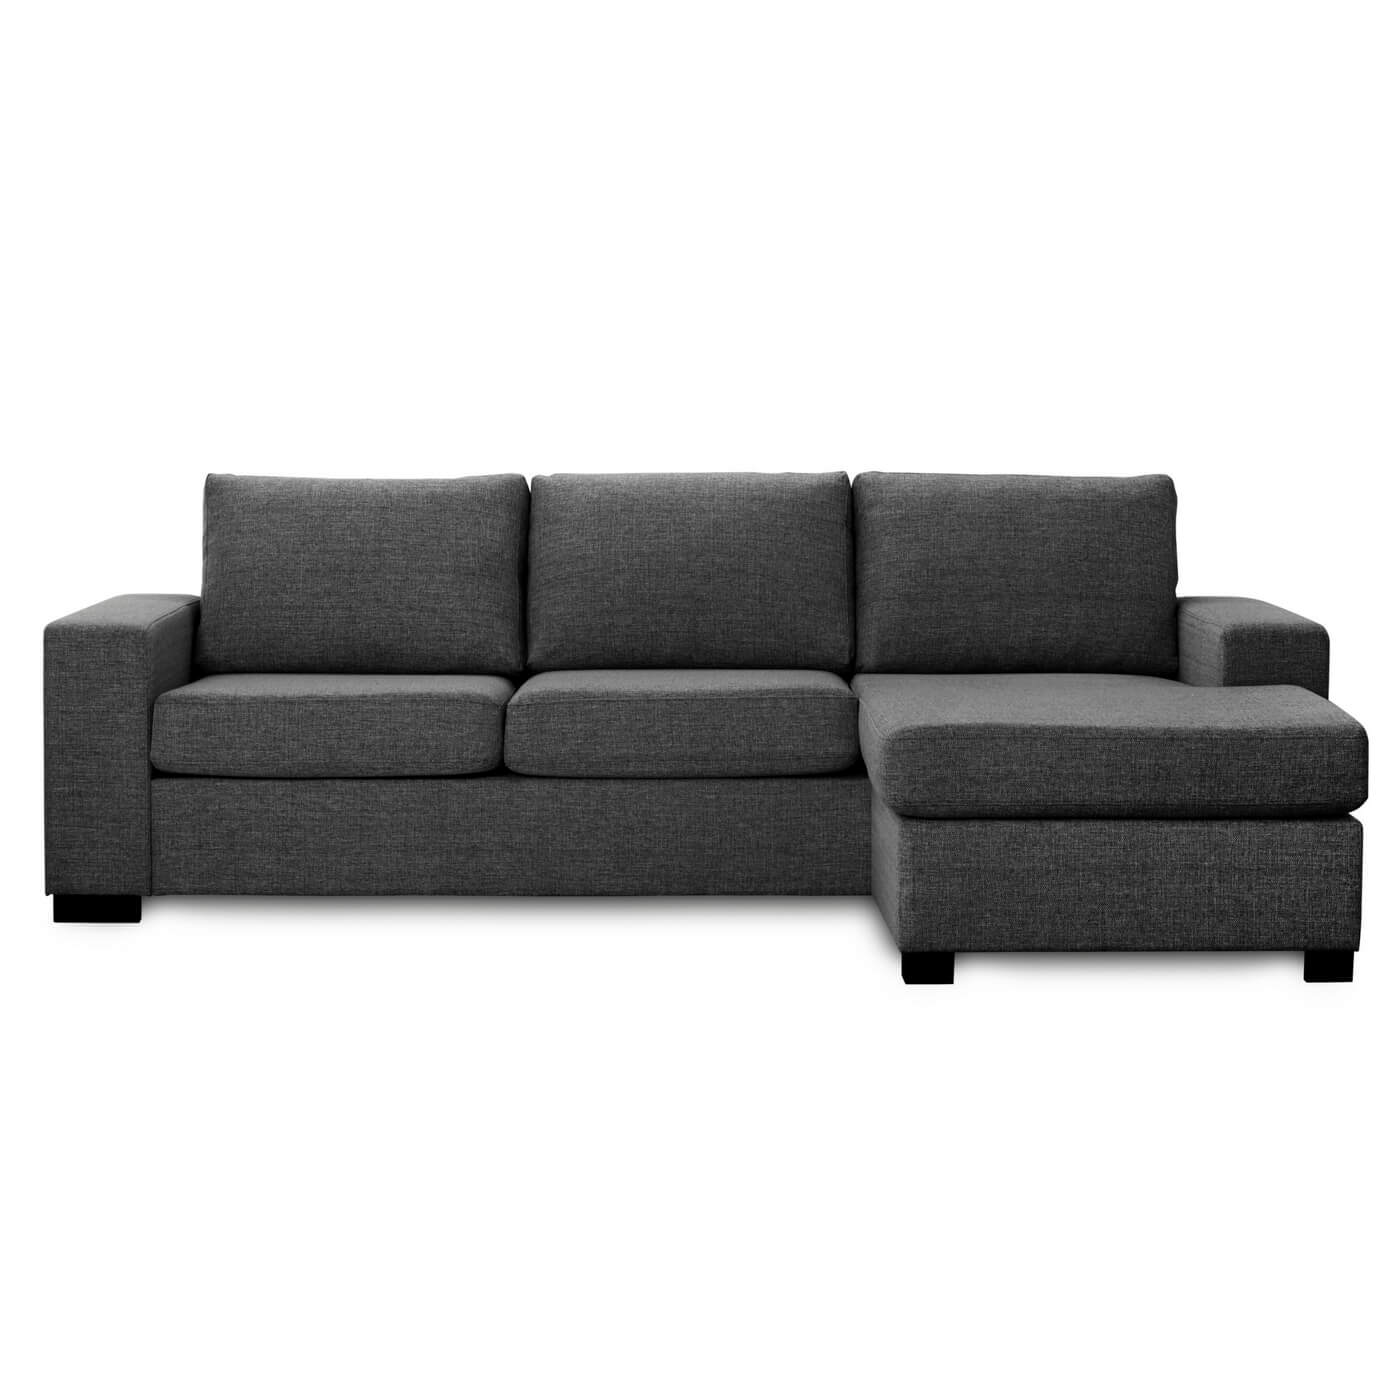 Image of   Milan 3 pers. sofa - antracitgrå stof m. chaiselong